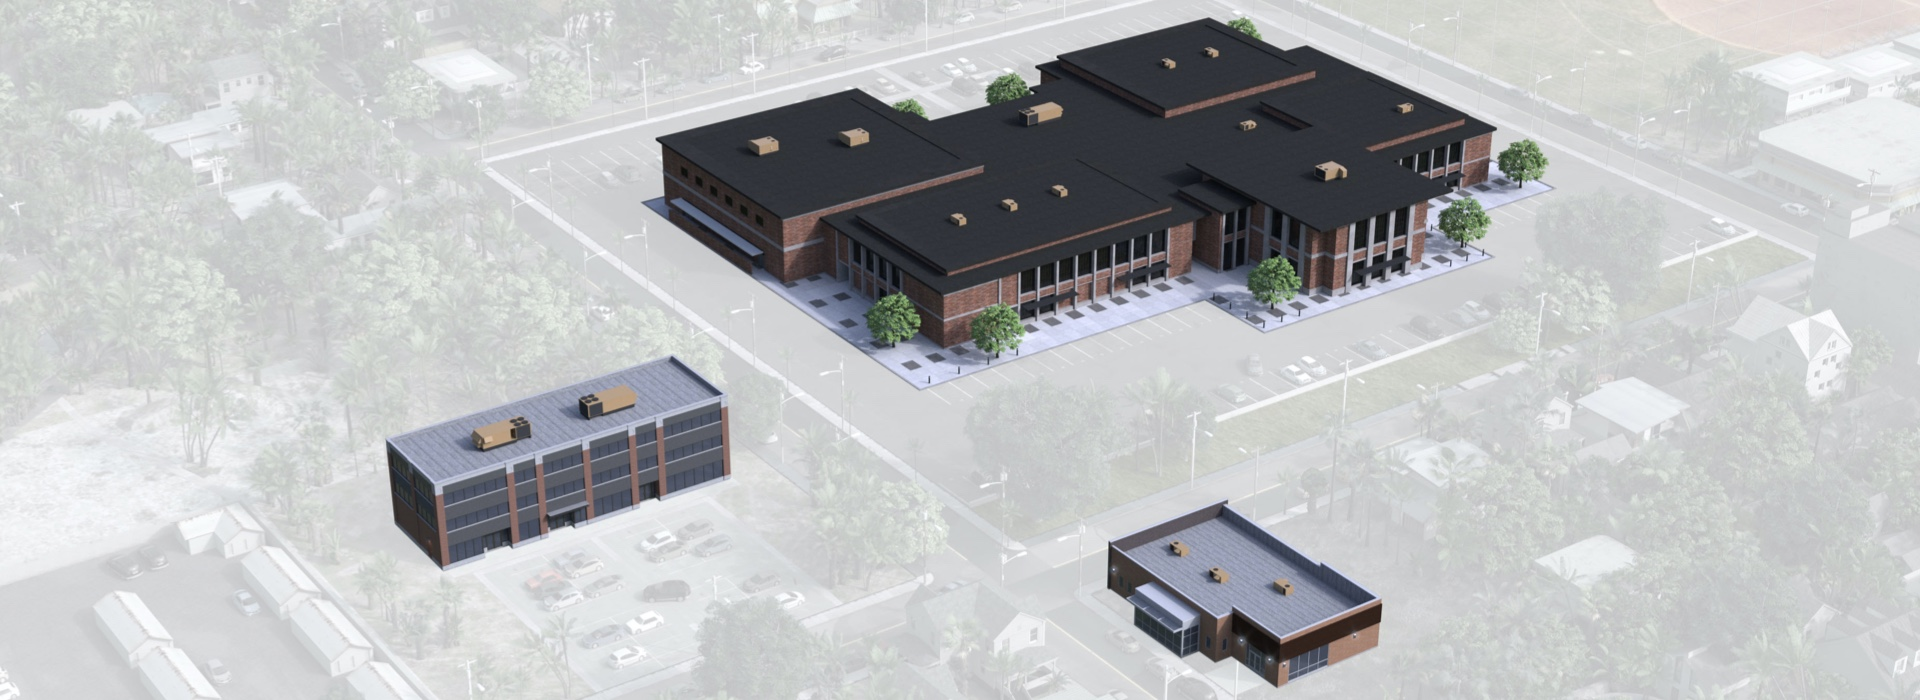 Background Image of three buildings